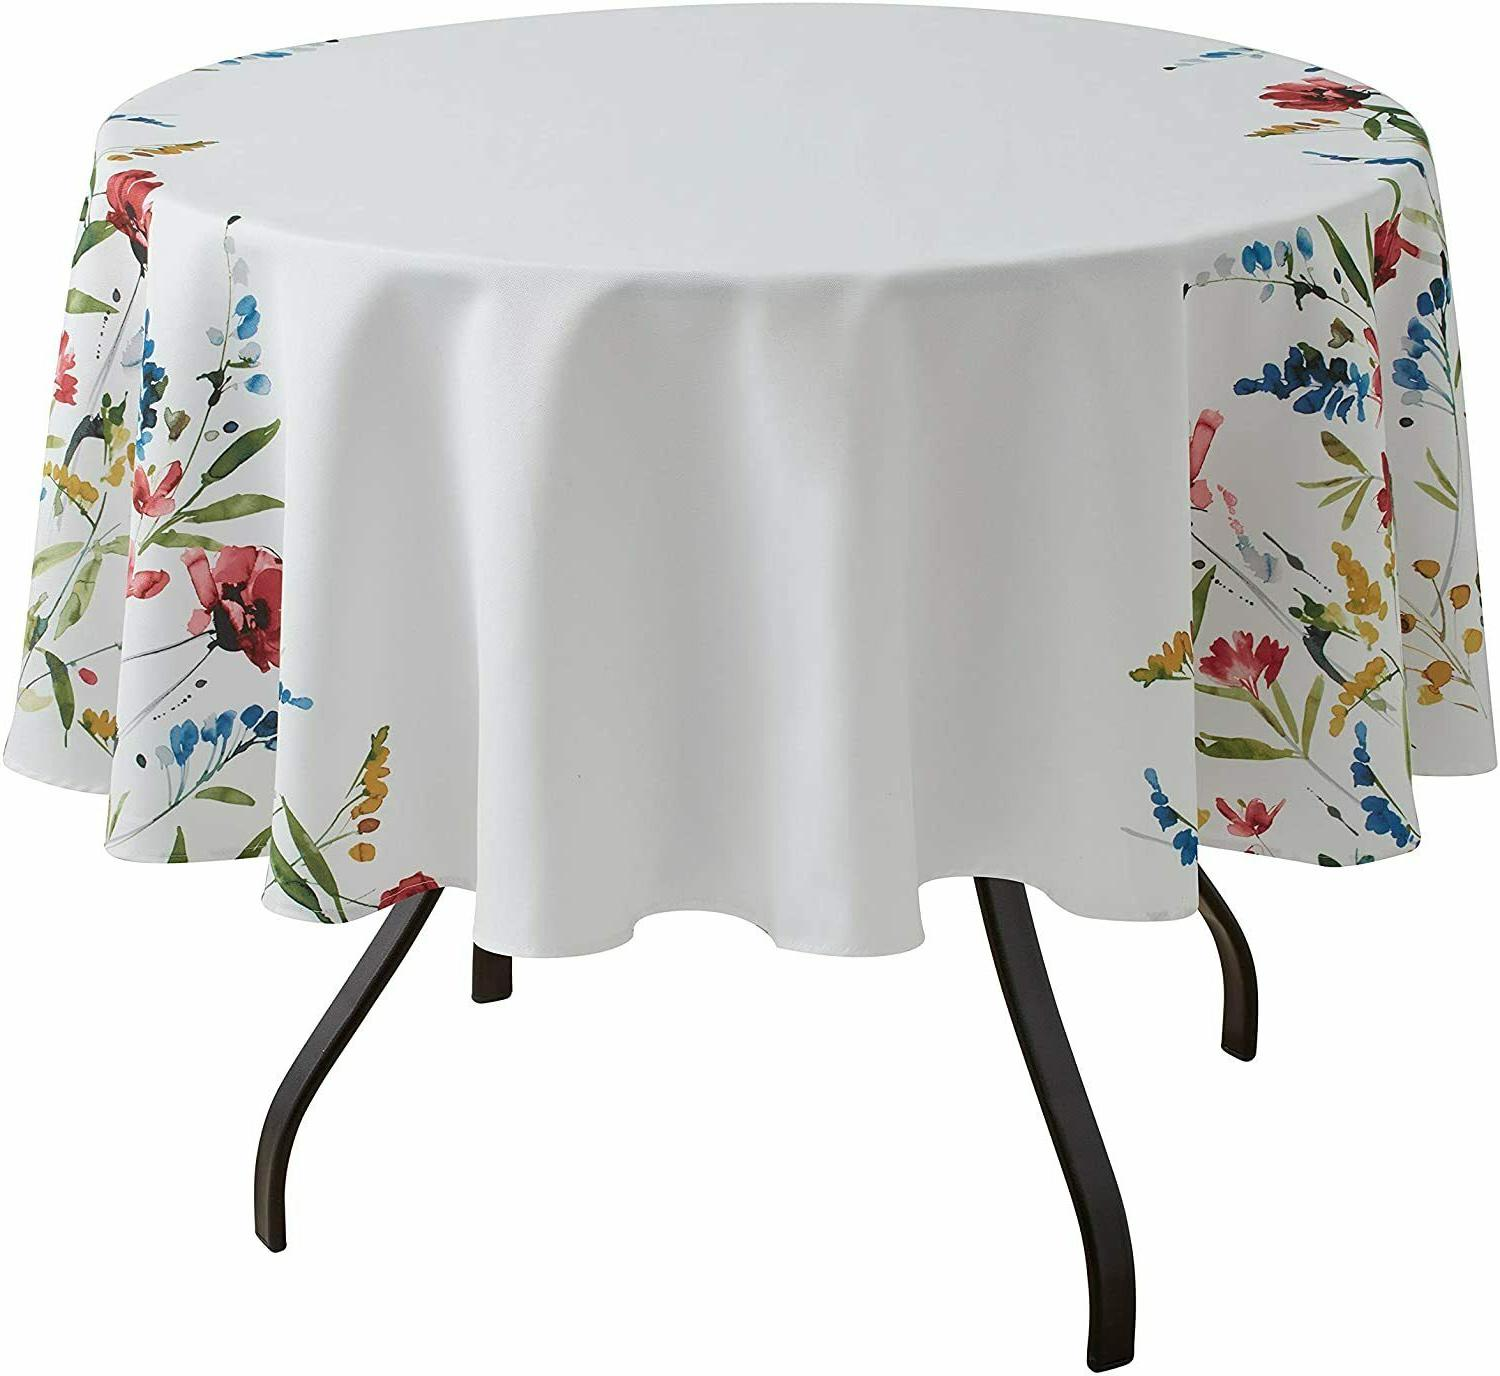 Benson Mills Indoor/Outdoor Tablecloth